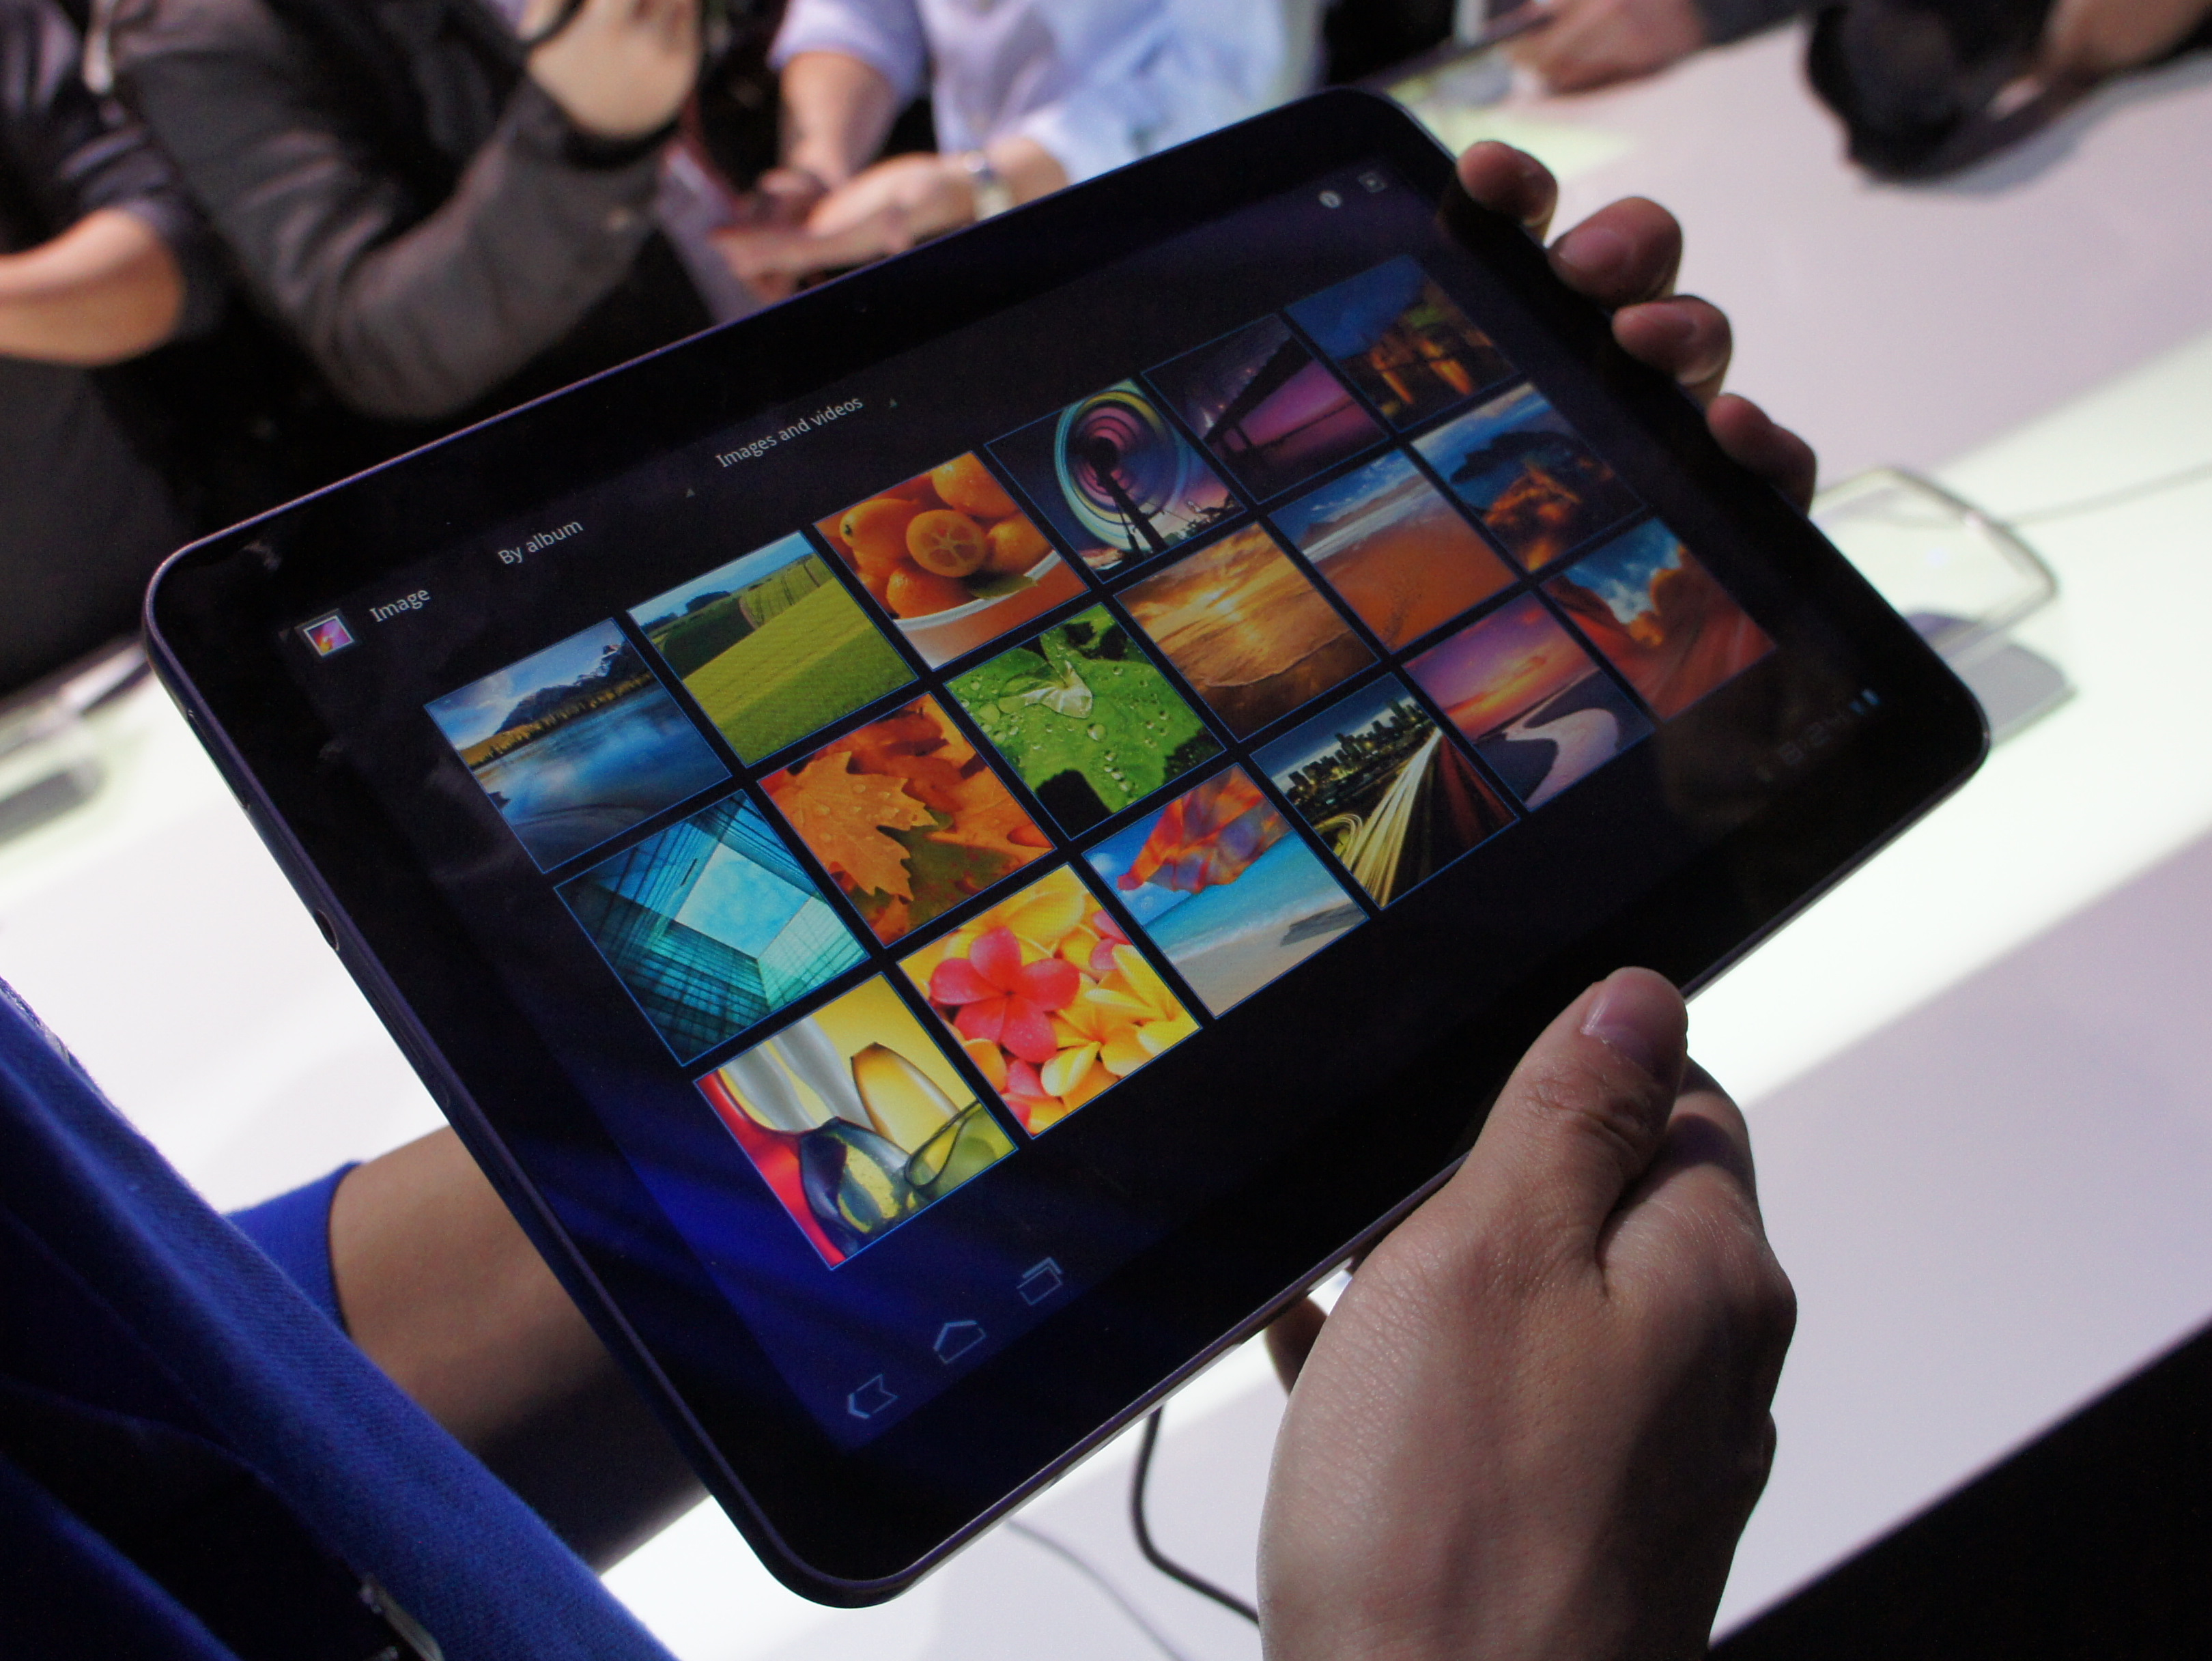 Samsung to unveil 8.9-inch Galaxy Tab on March 22